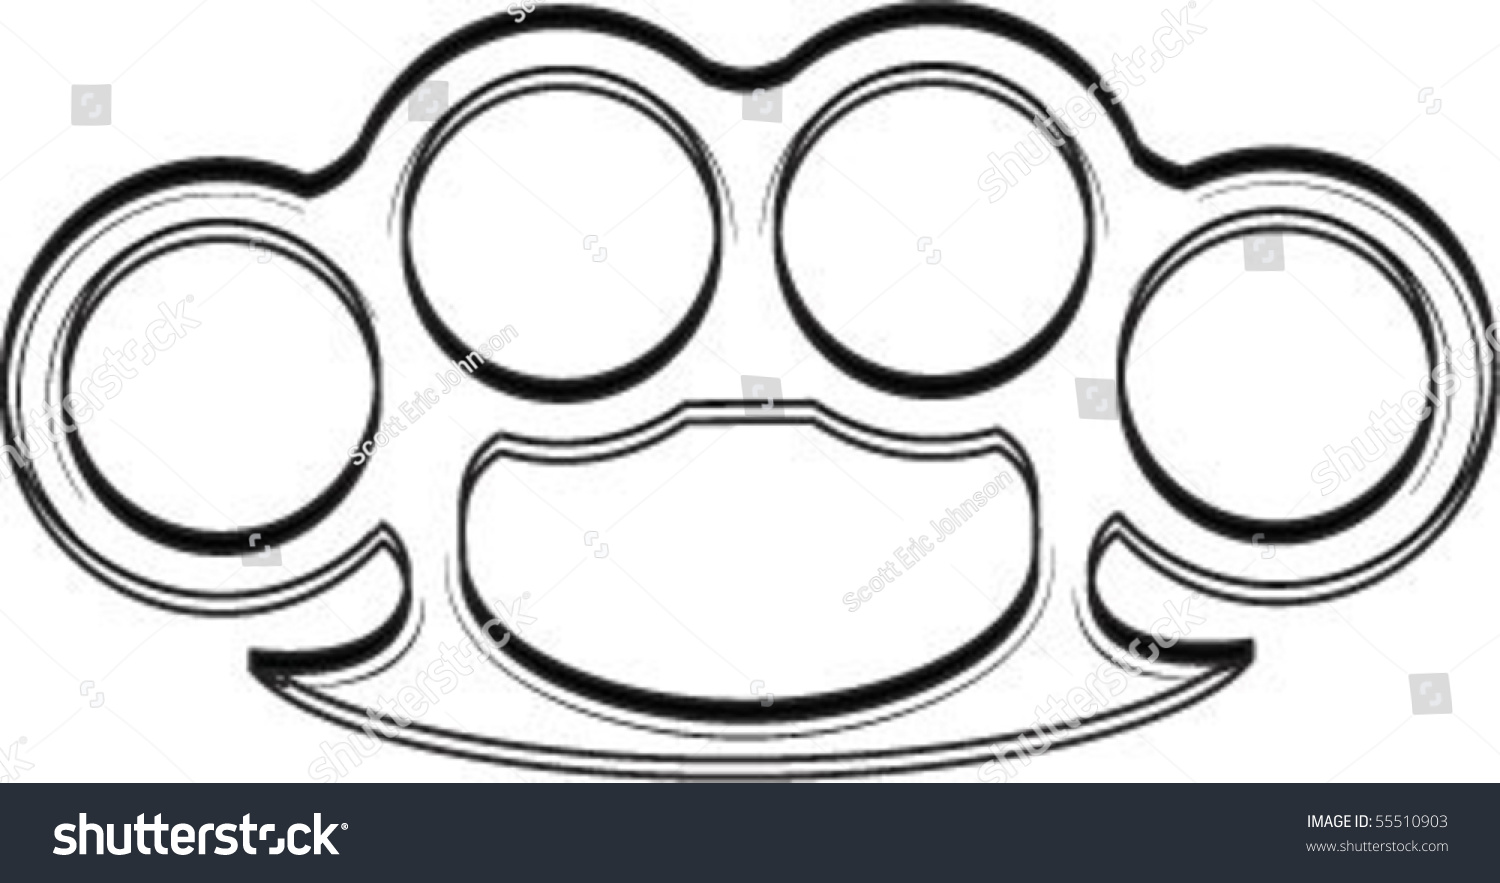 brass knuckles template - brass knuckles stock vector 55510903 shutterstock